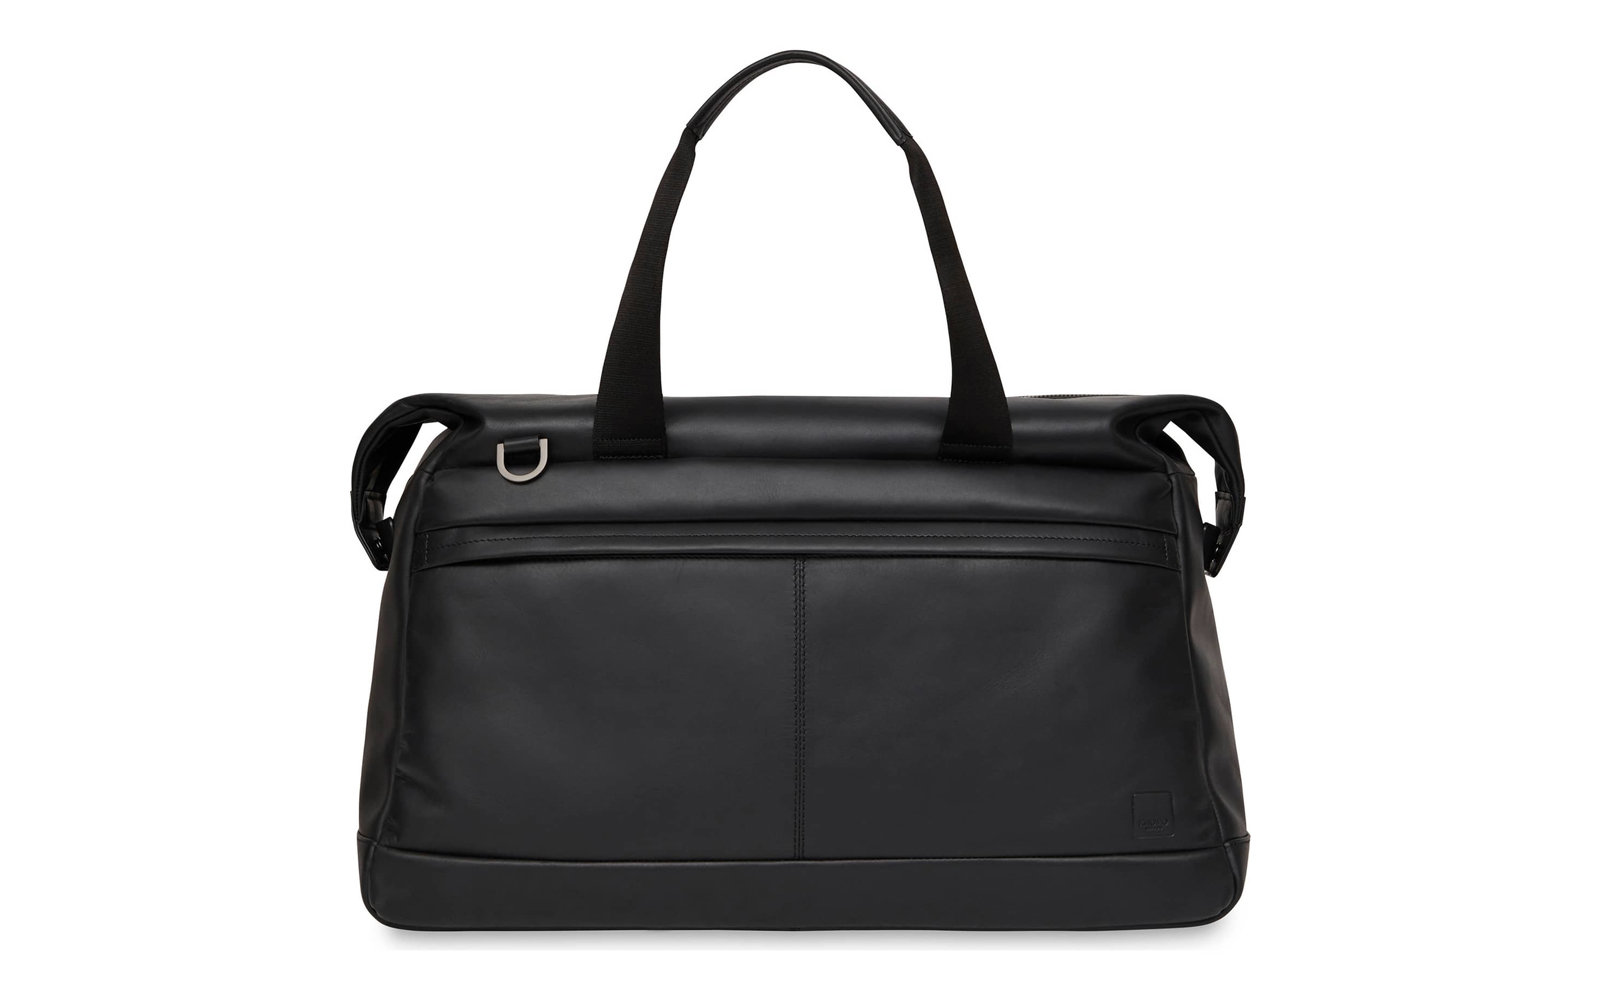 9184771de877 Knomo London  Barbican Milton  Leather Duffel